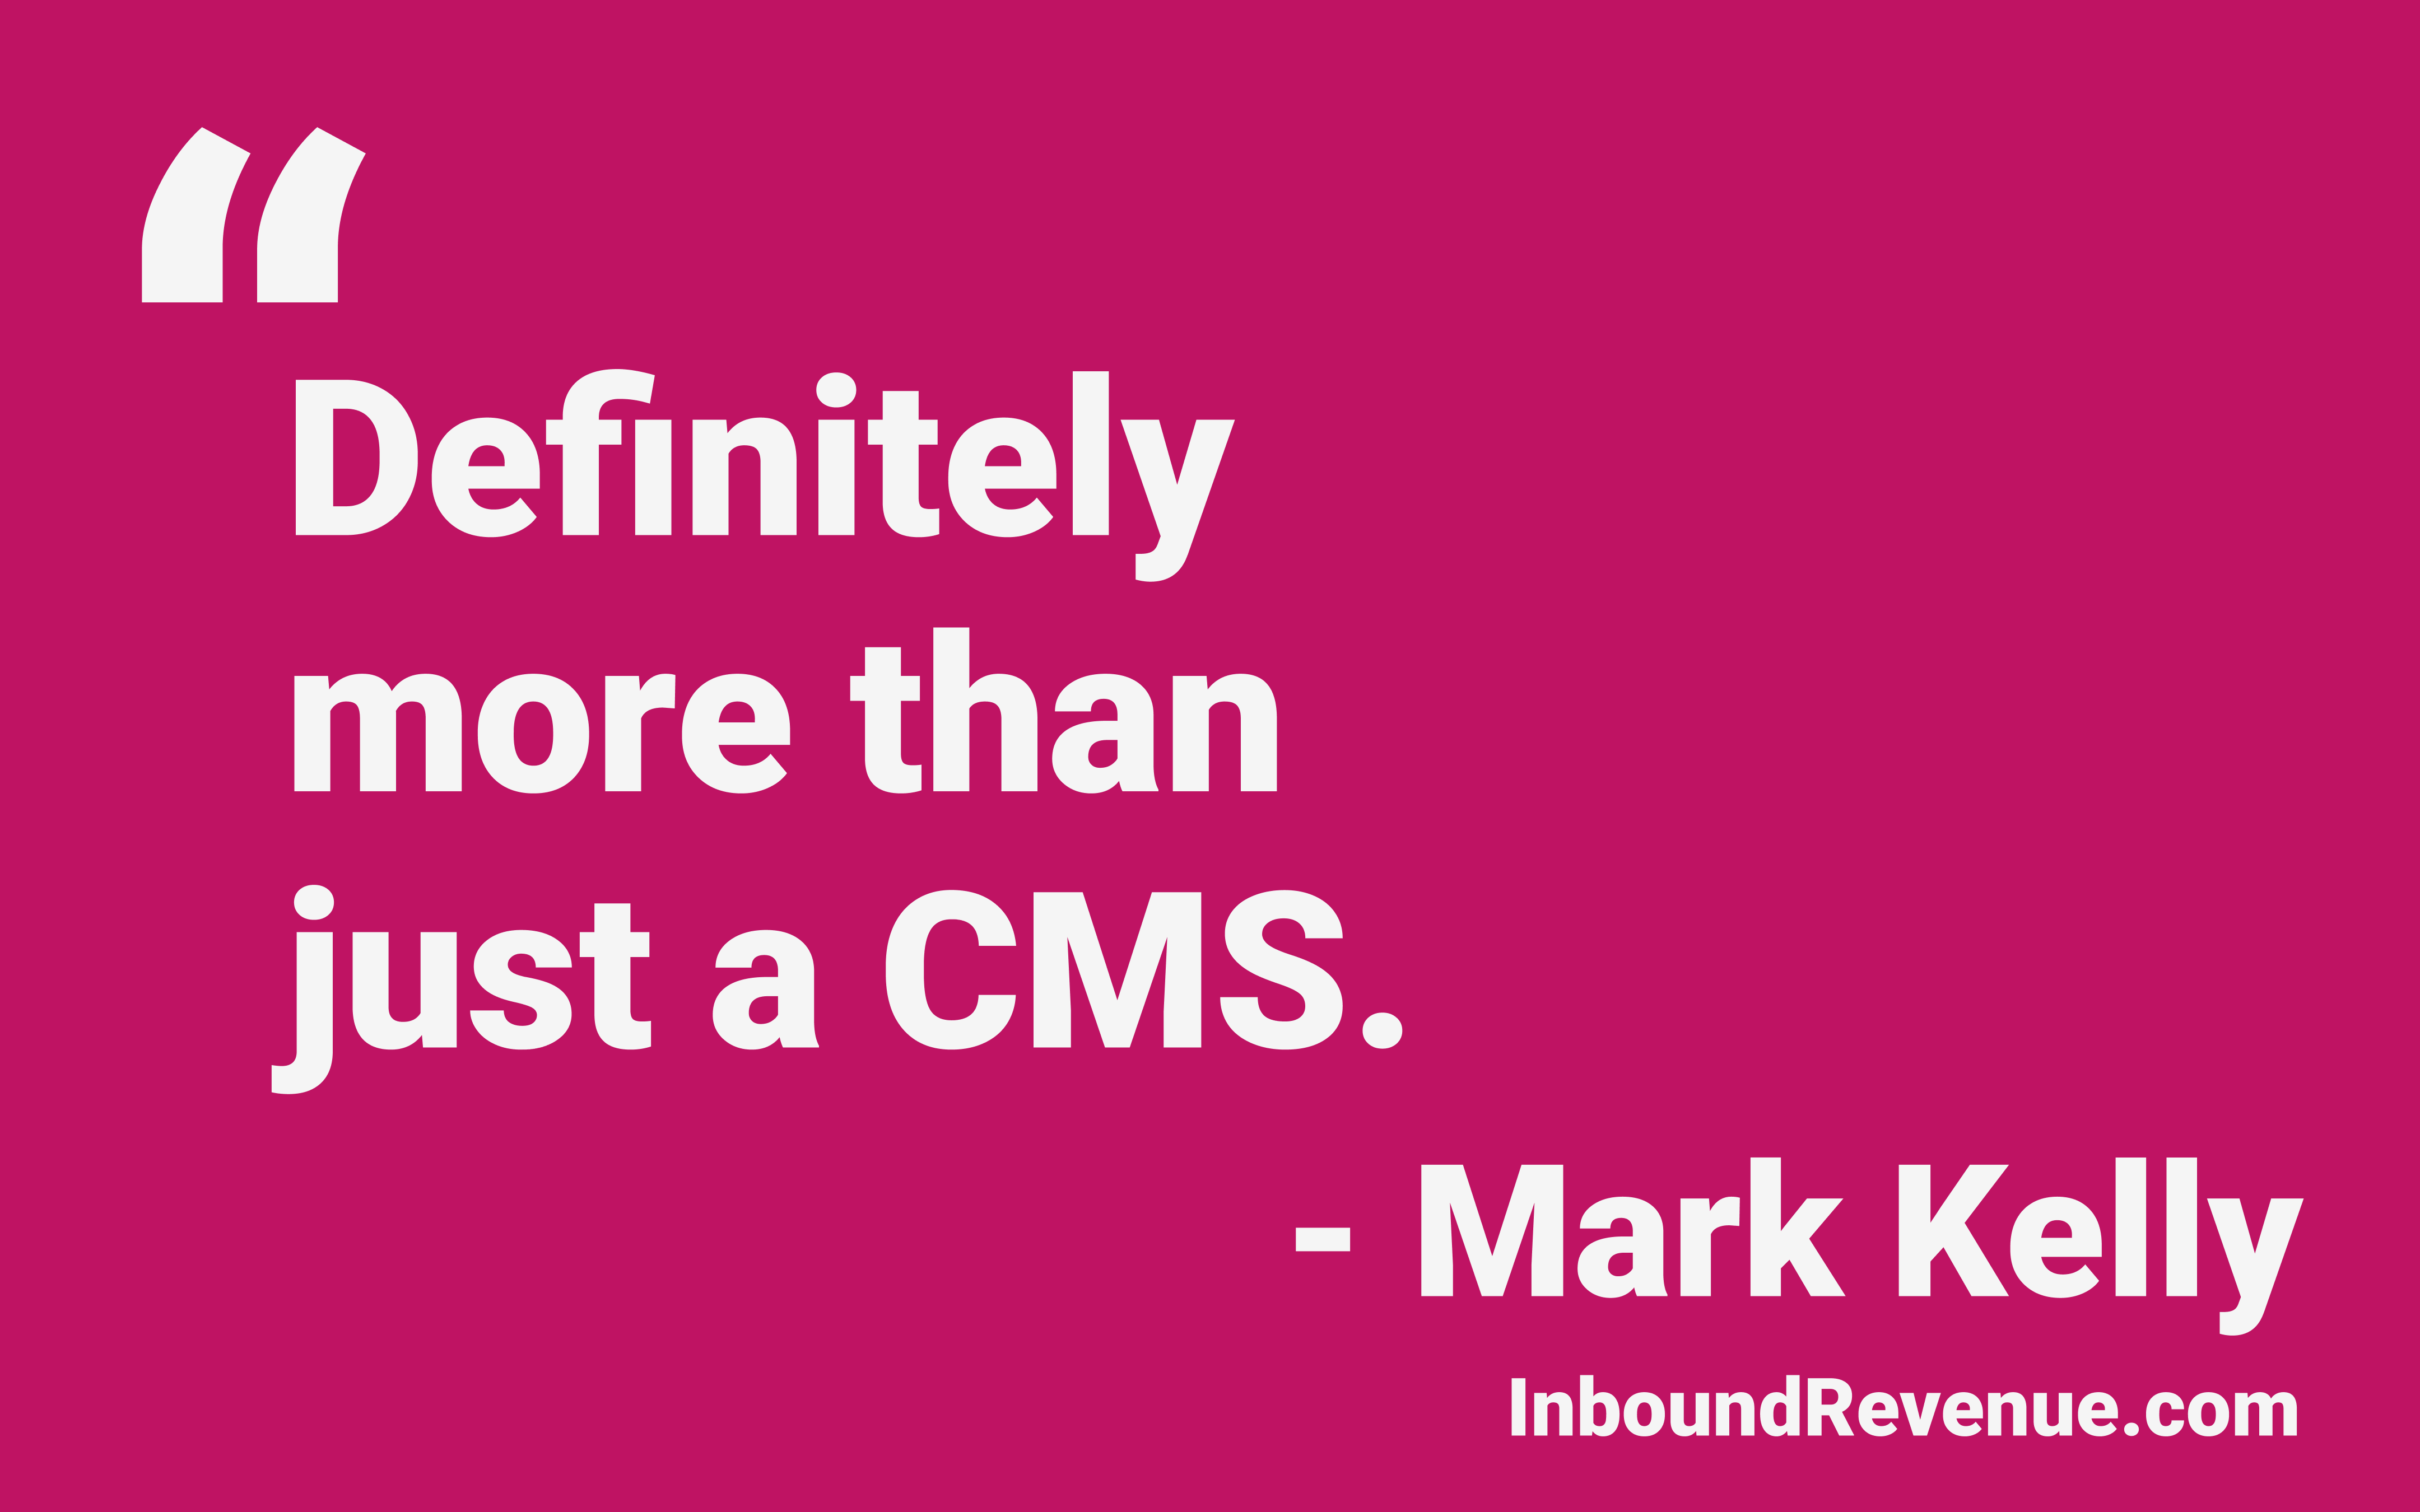 quote from Mark Kelly of InboundRevenue Definitely more than just a CMS